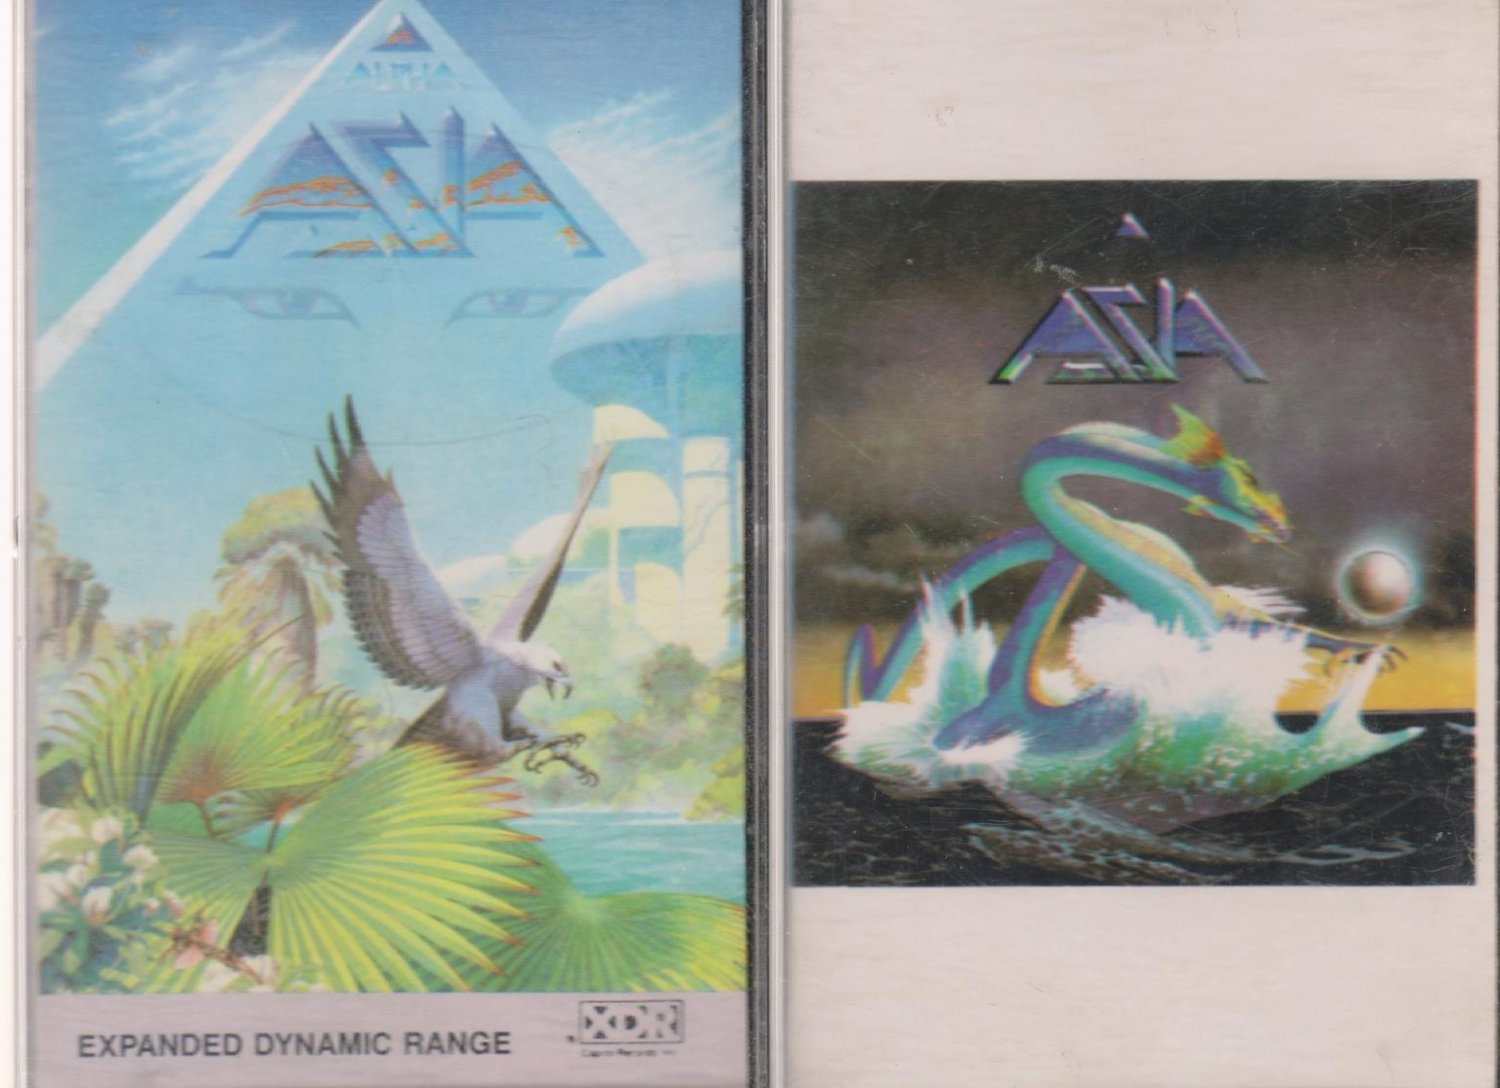 ASIA CASSETTE TAPES LOT OF 2 (2.99)